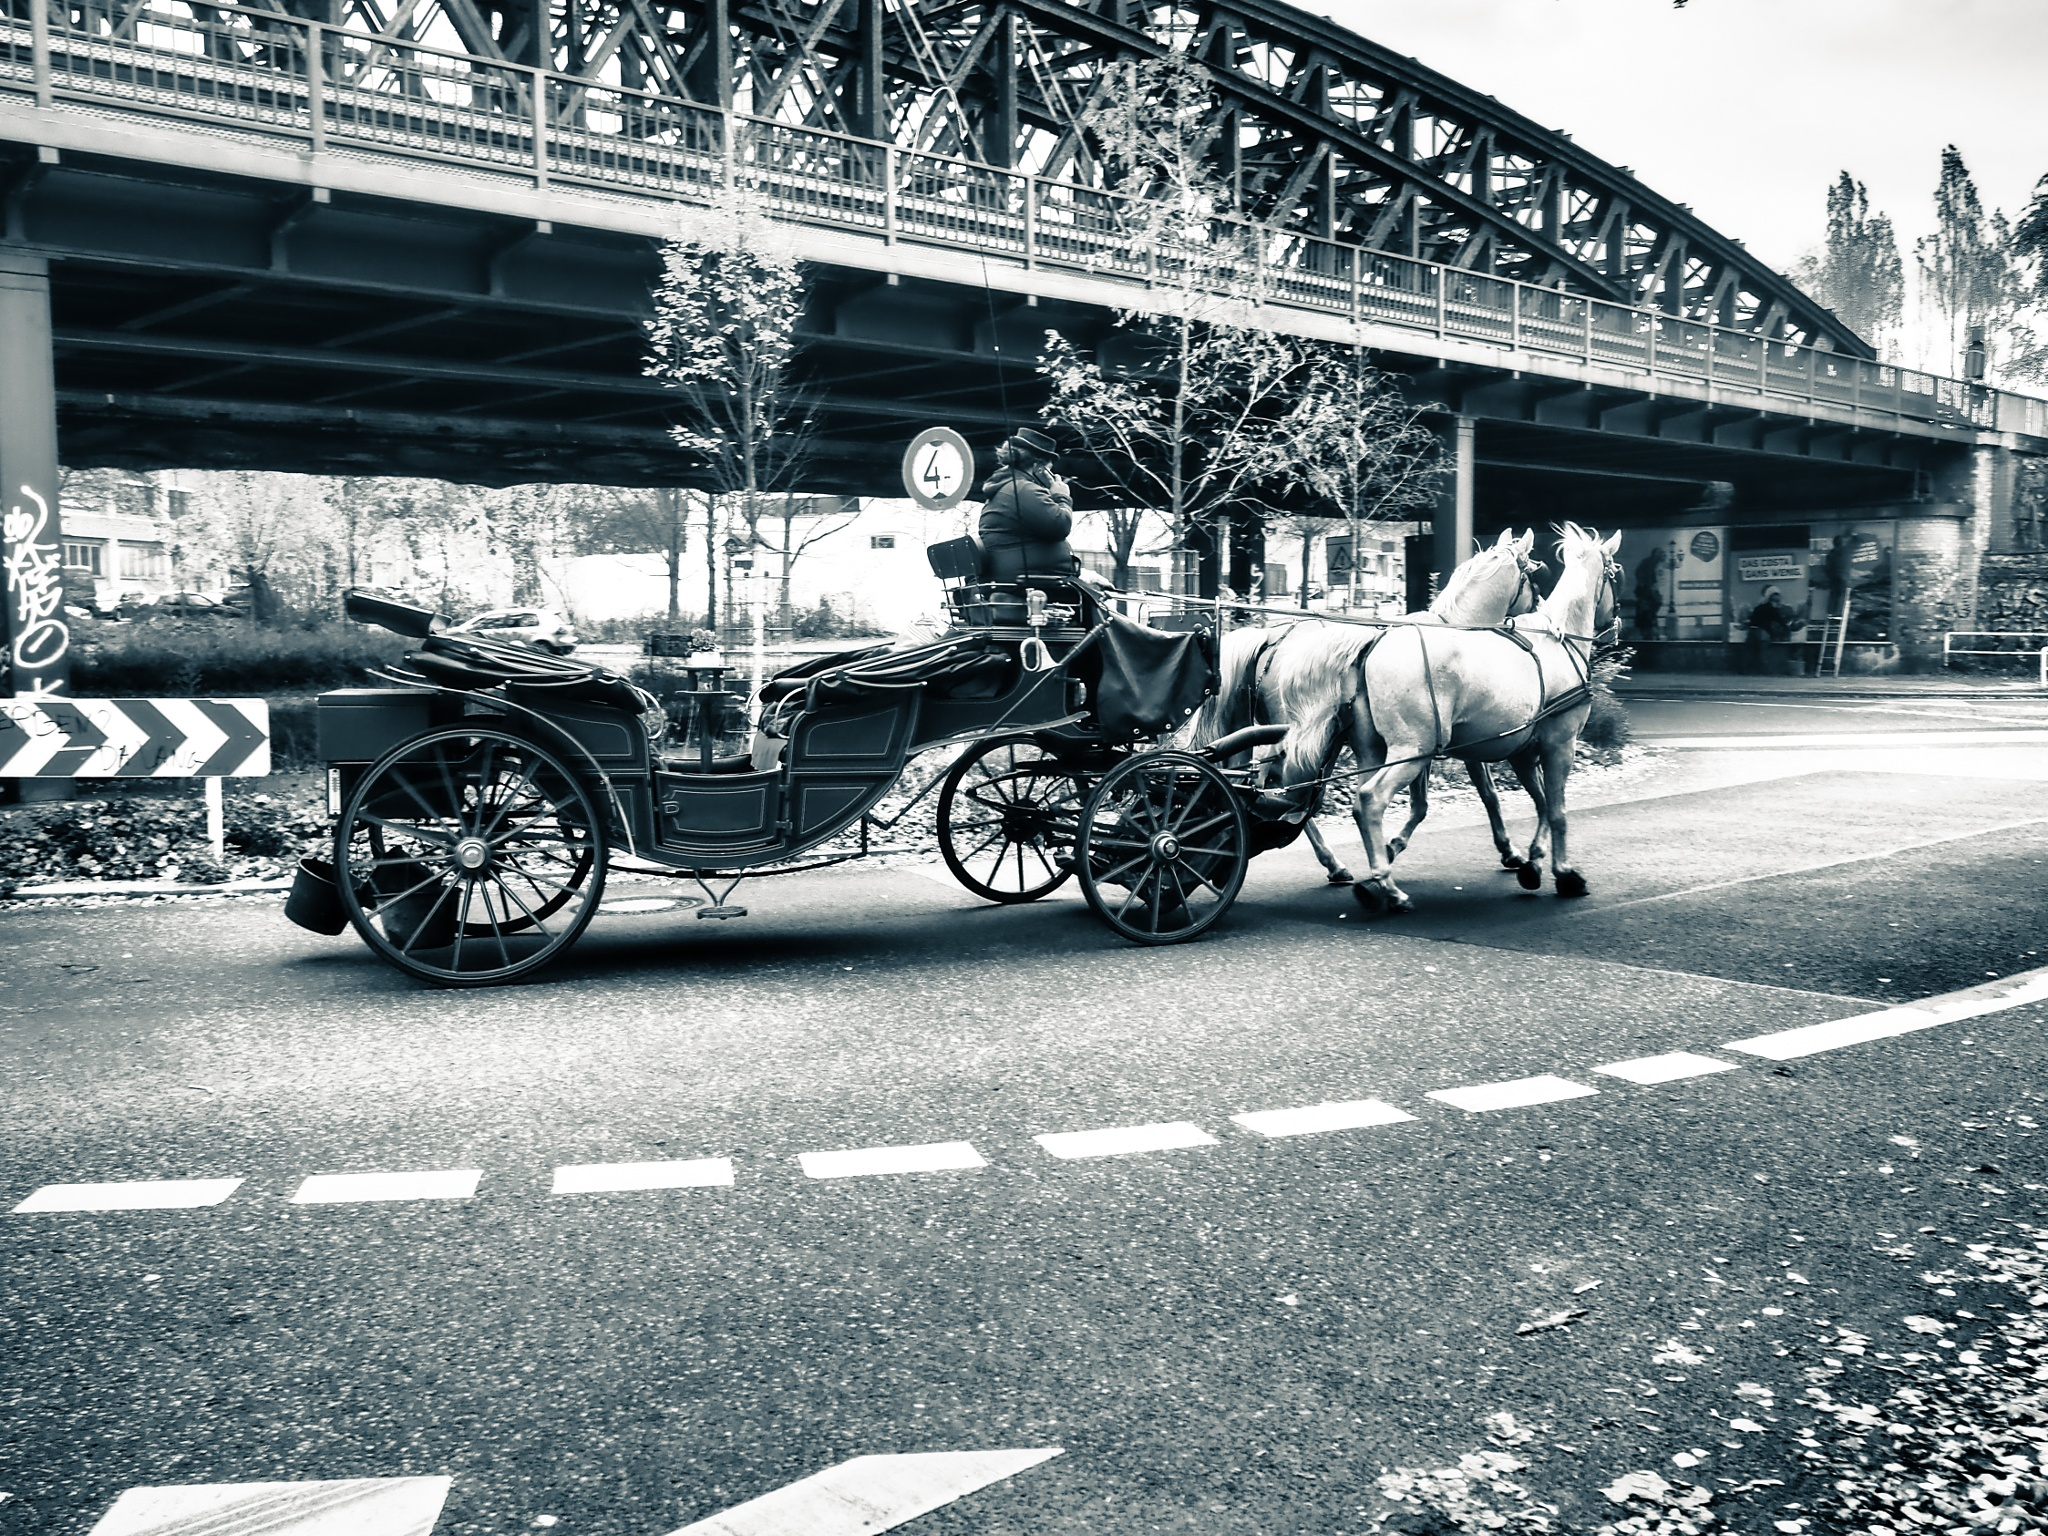 Berlin Streets Black & White by Jeans Brown Photography / Jens Schwarz